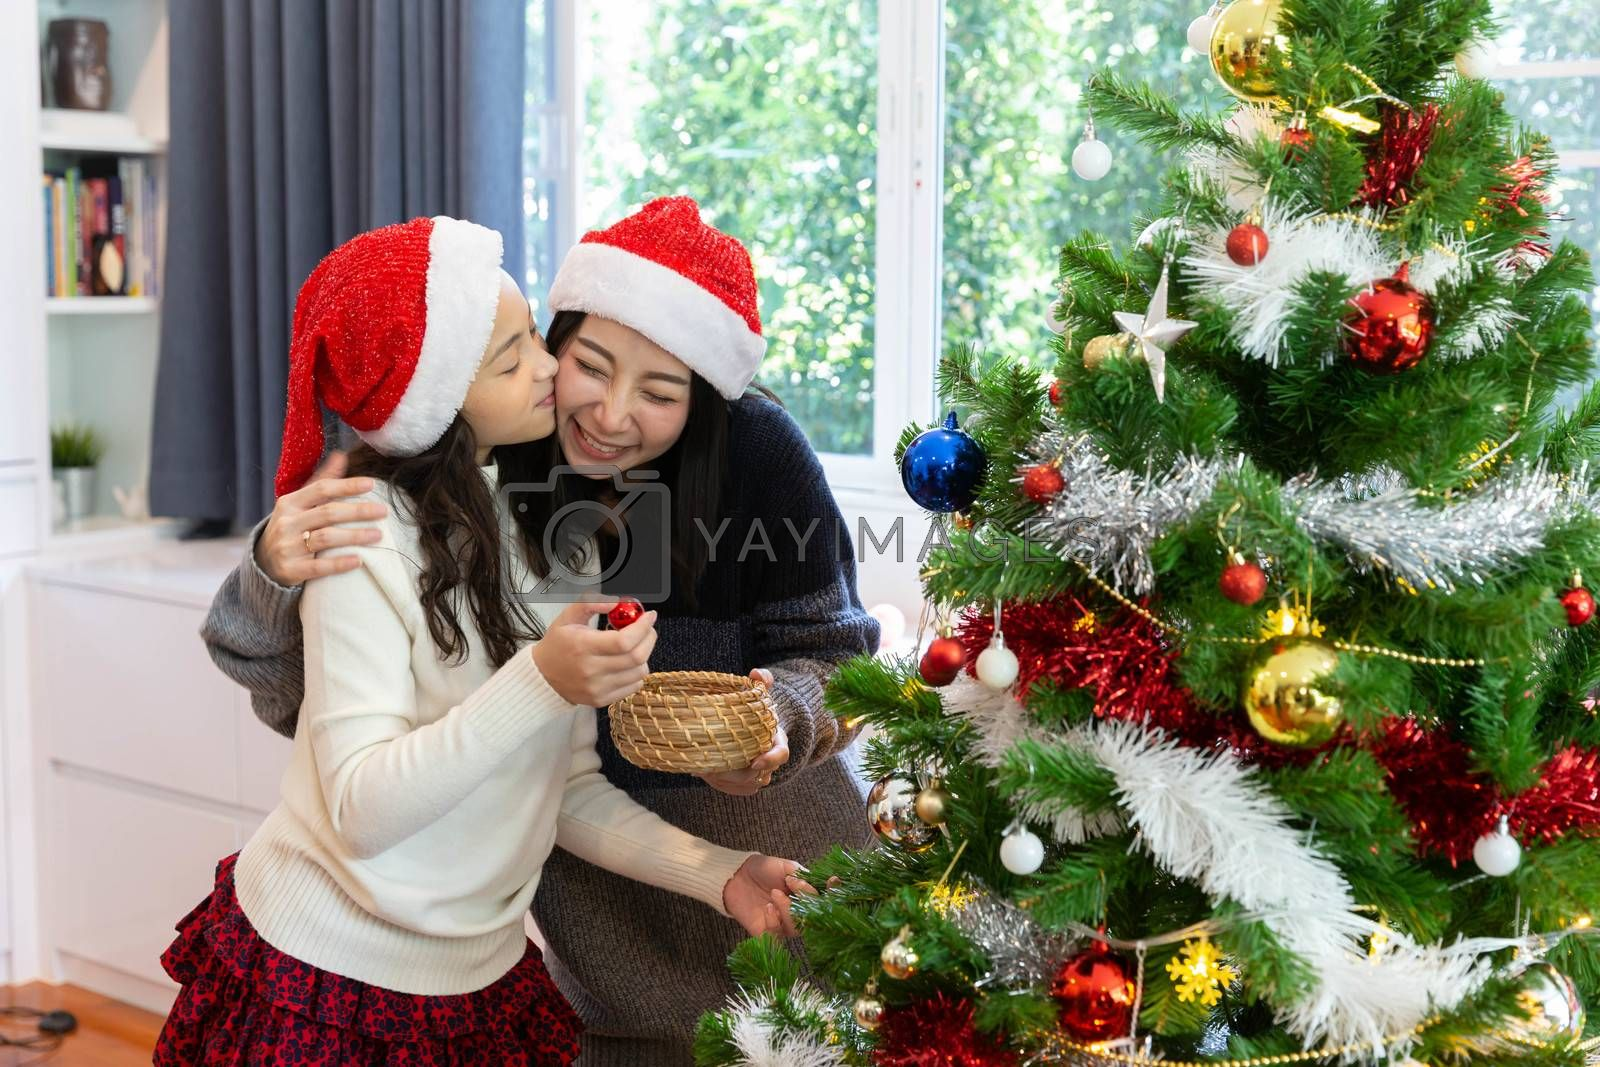 Daughter kiss her mom while decorate the christmas tree during the christmas holiday